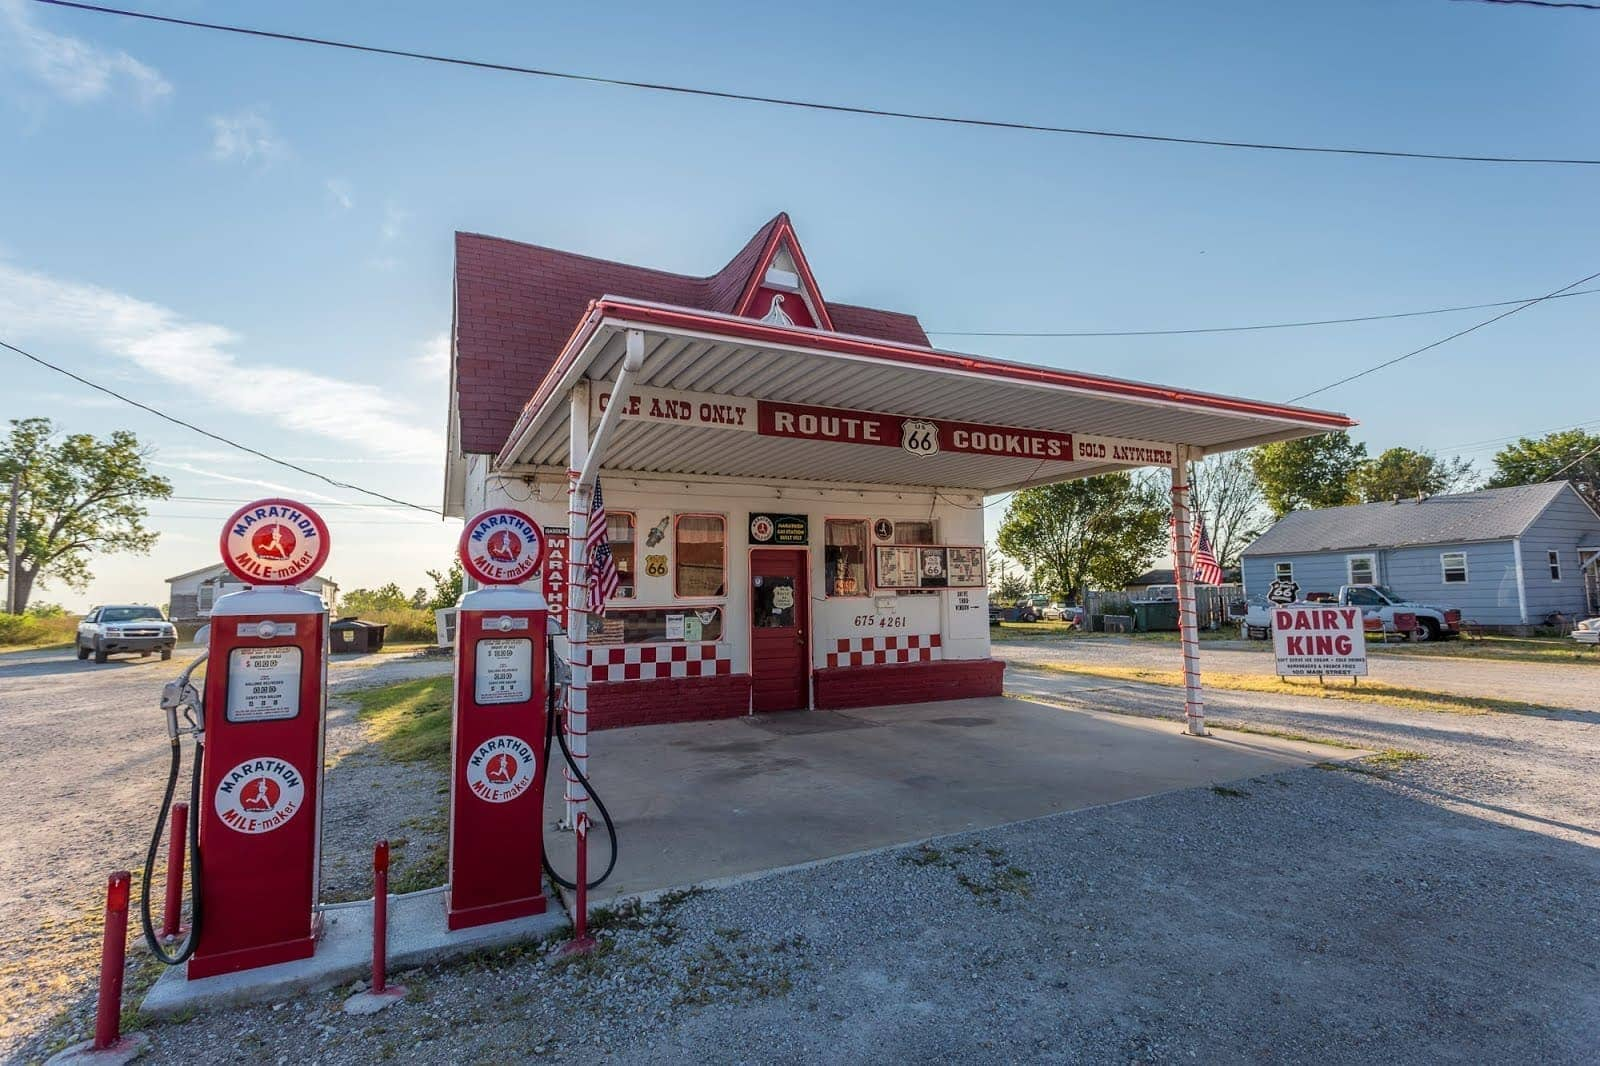 Cookie shop commerce Route 66 Oklahoma_by_Laurence Norah